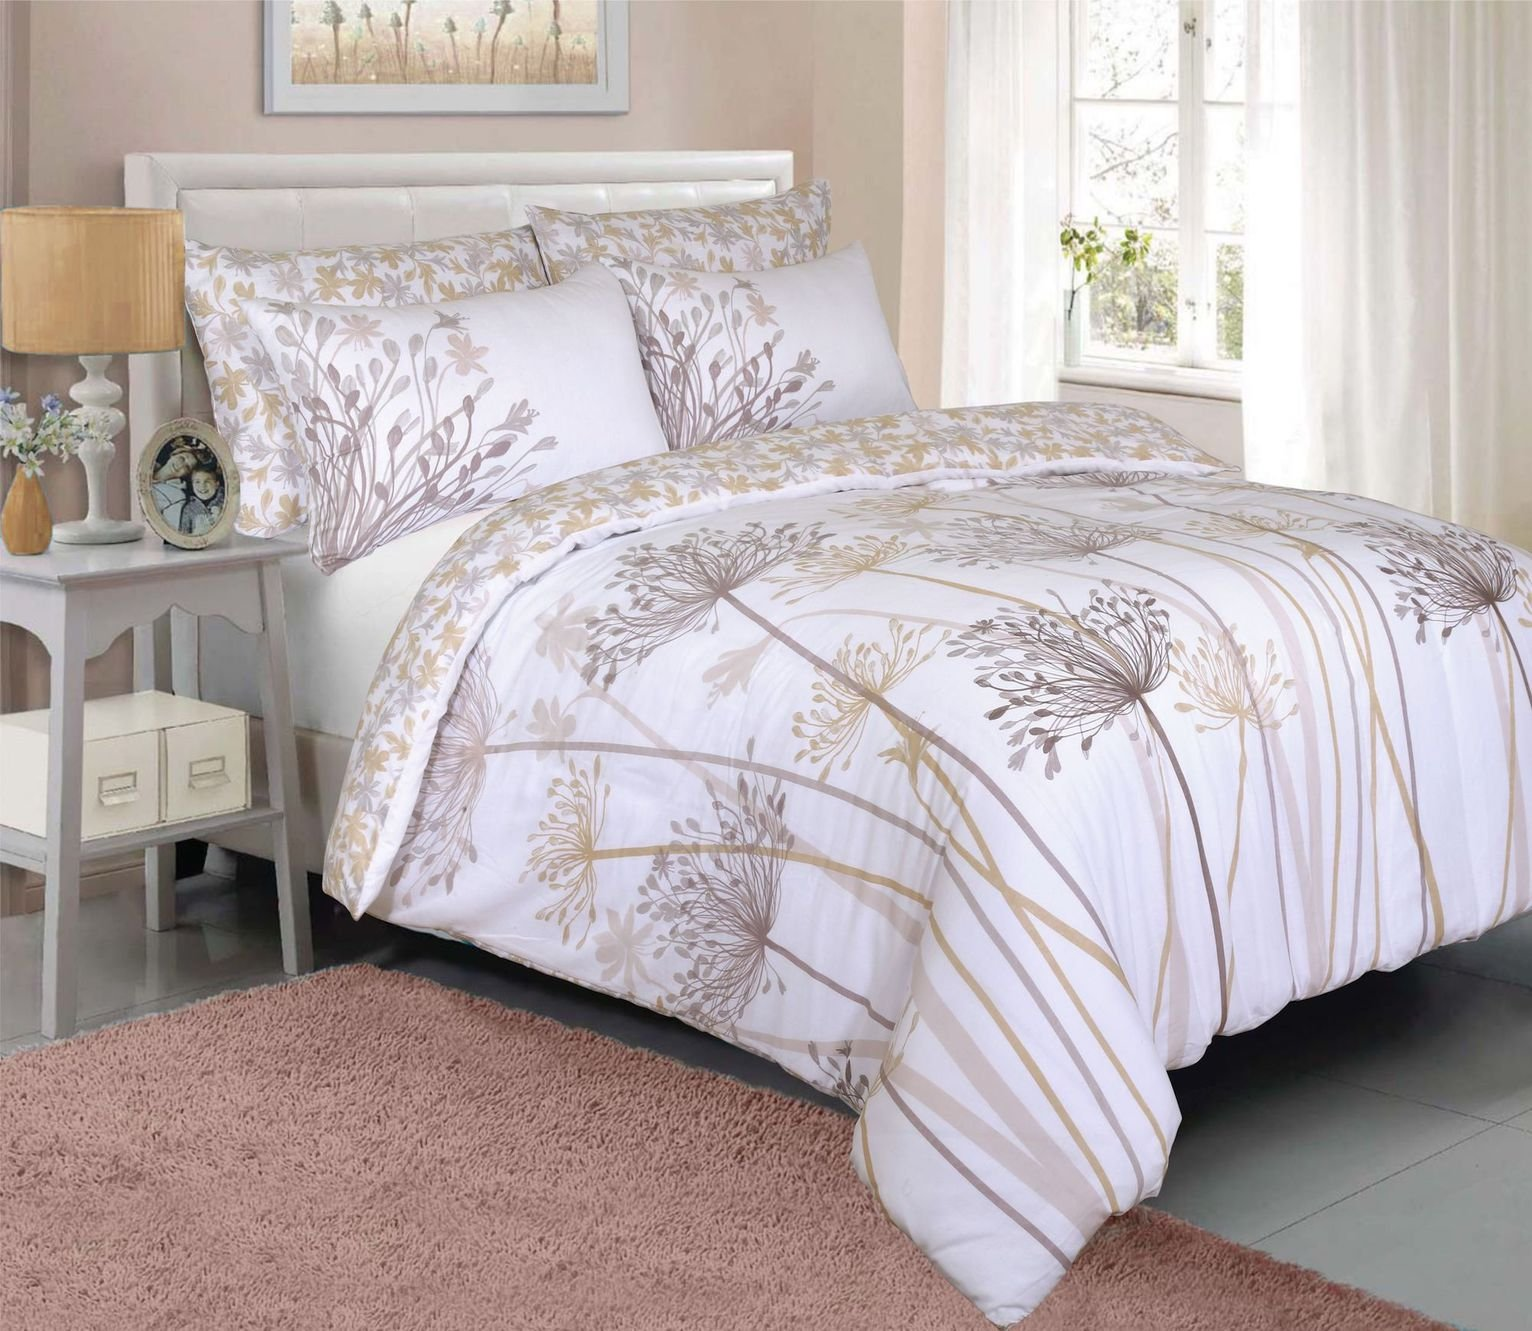 Argos Home Natural Meadow Bedding Set – Double